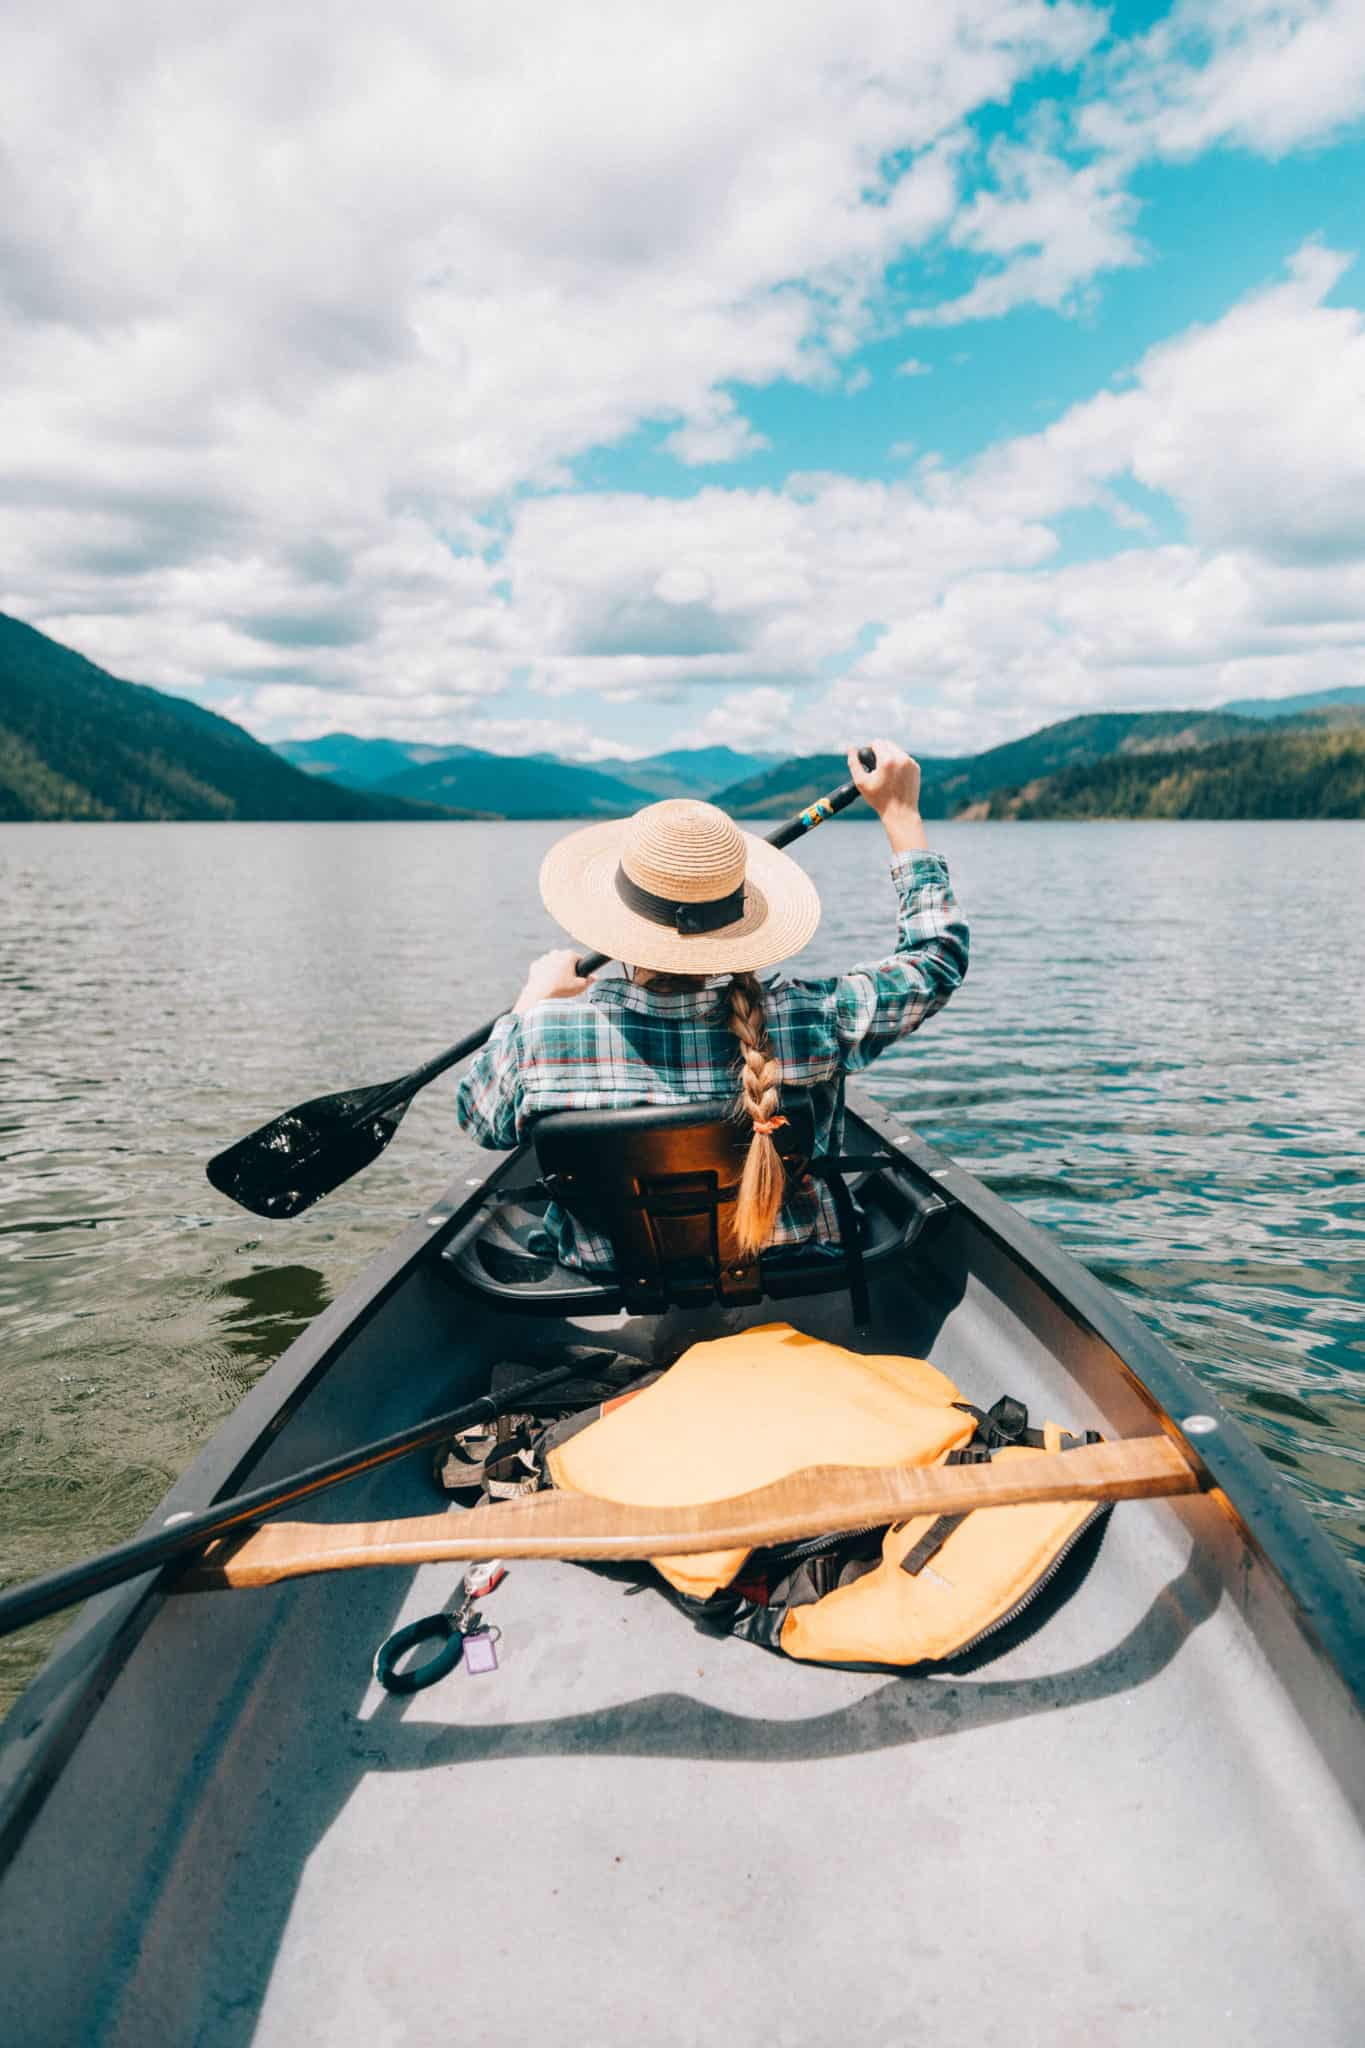 Priest Lake, Emily Mandagie in canoe in Upper Priest Lake Idaho - The Mandagies